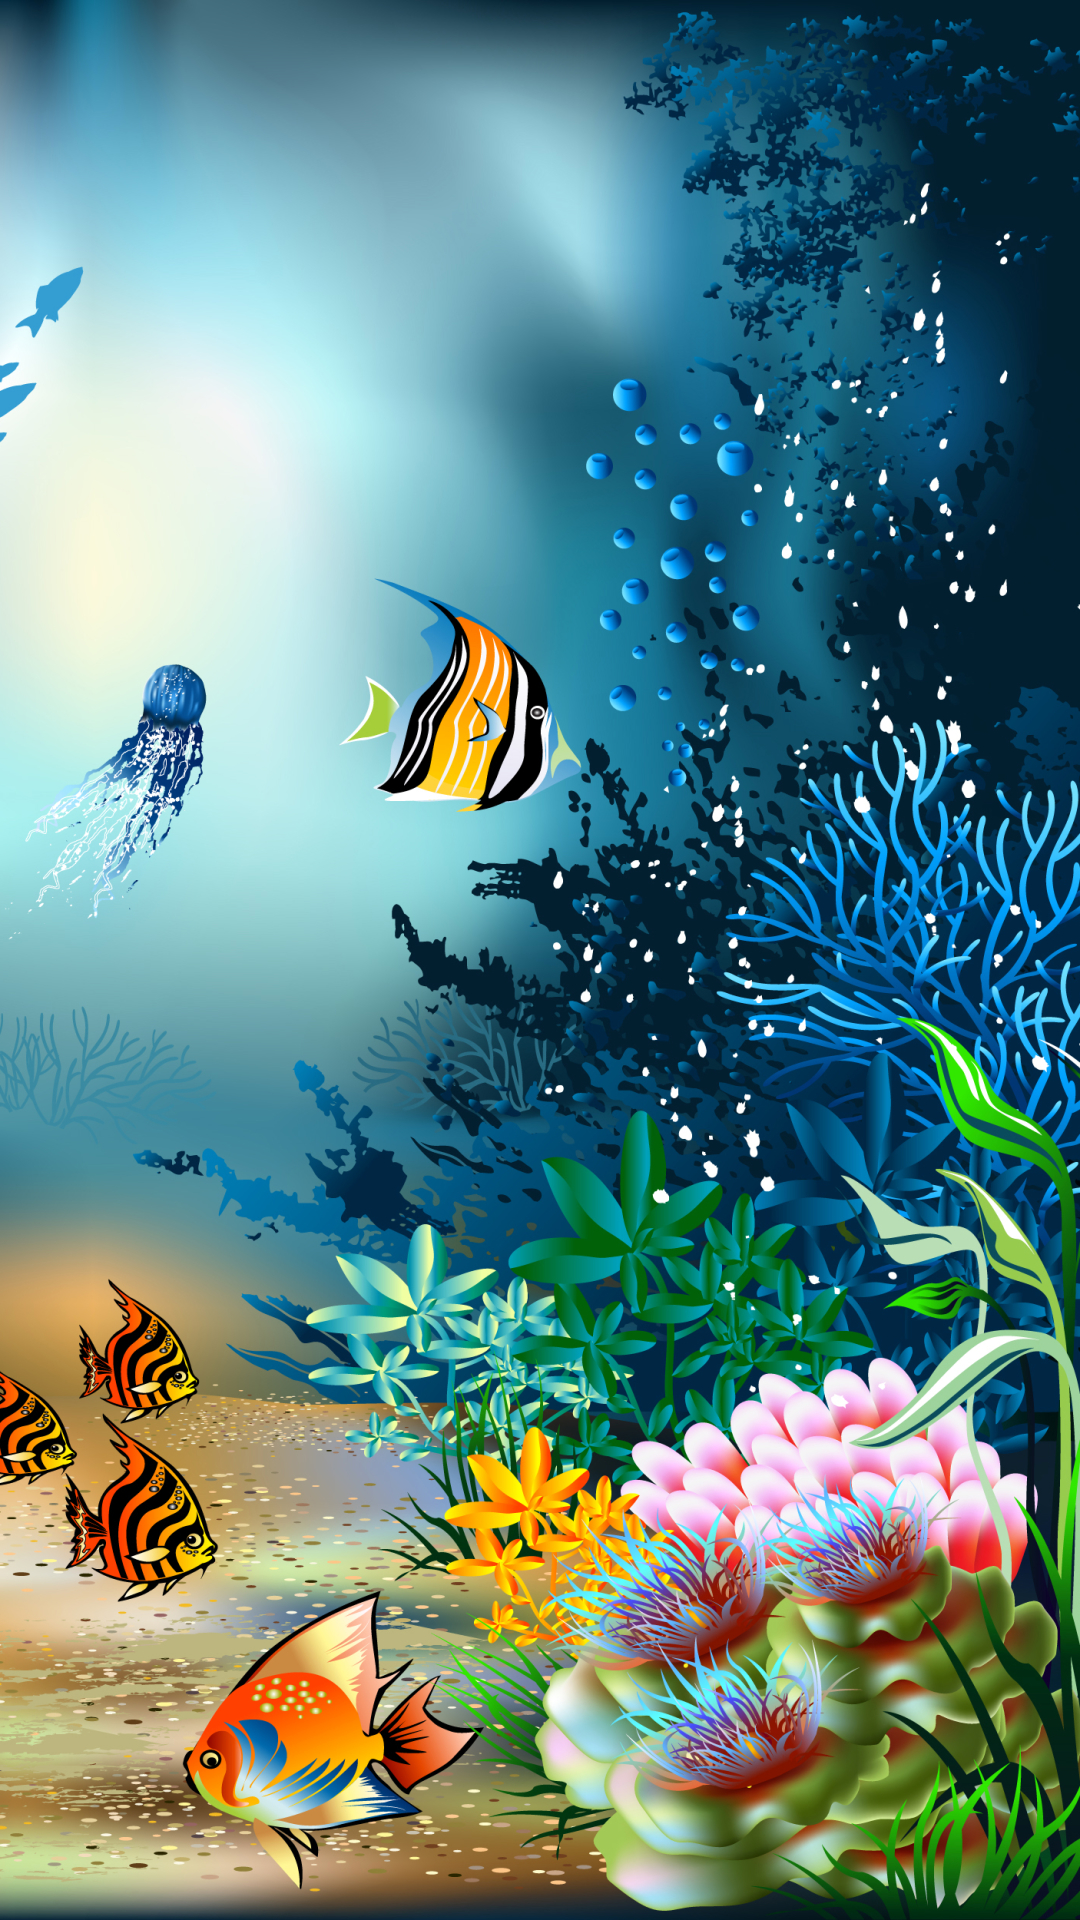 Underwater iphone wallpaper - Wallpaper 682537